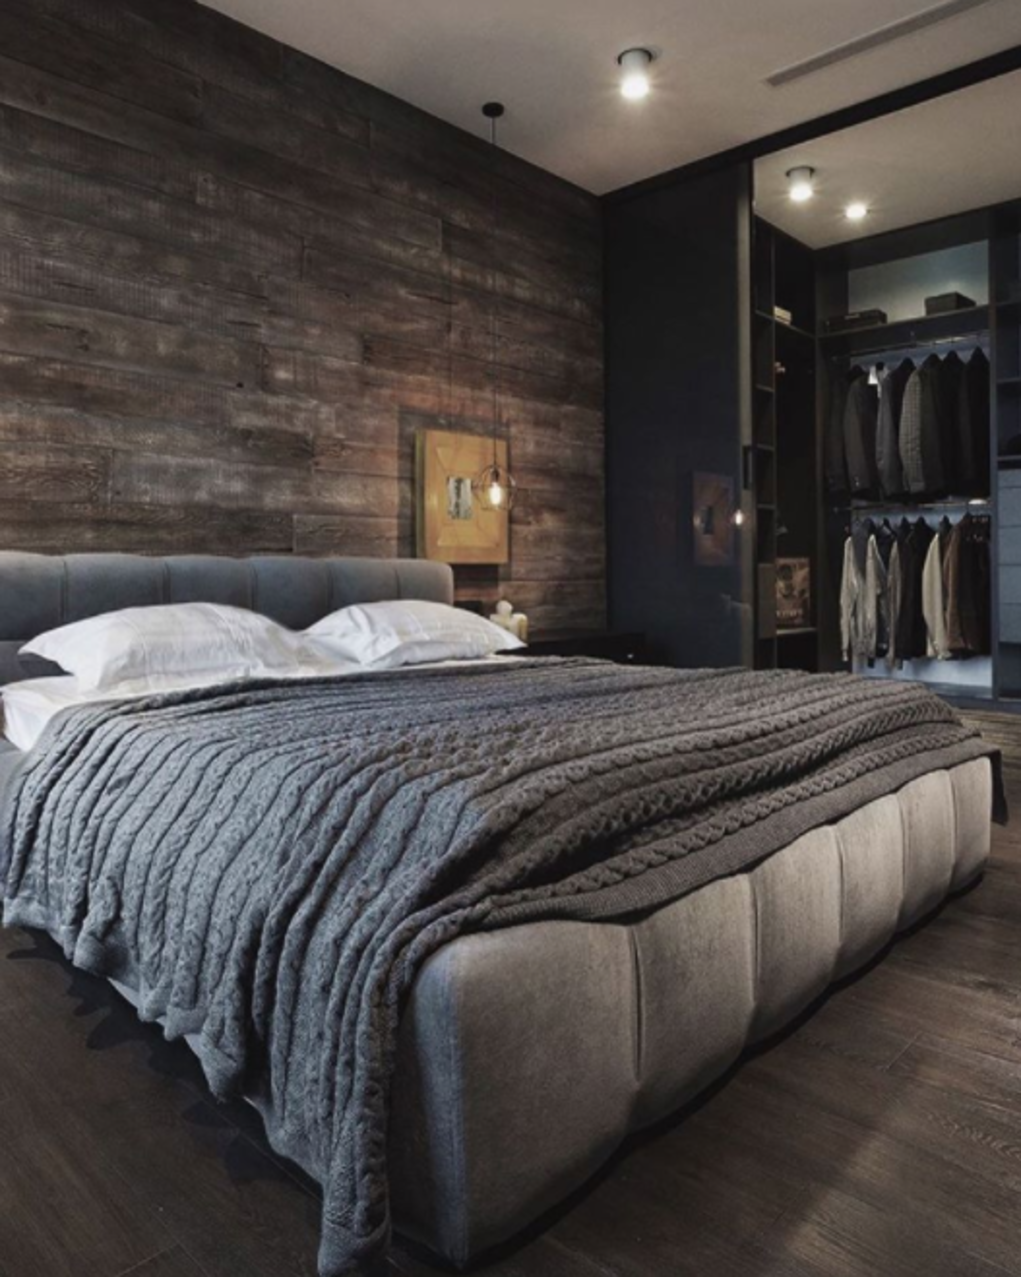 examples of dark interior design that proves black is sometimes